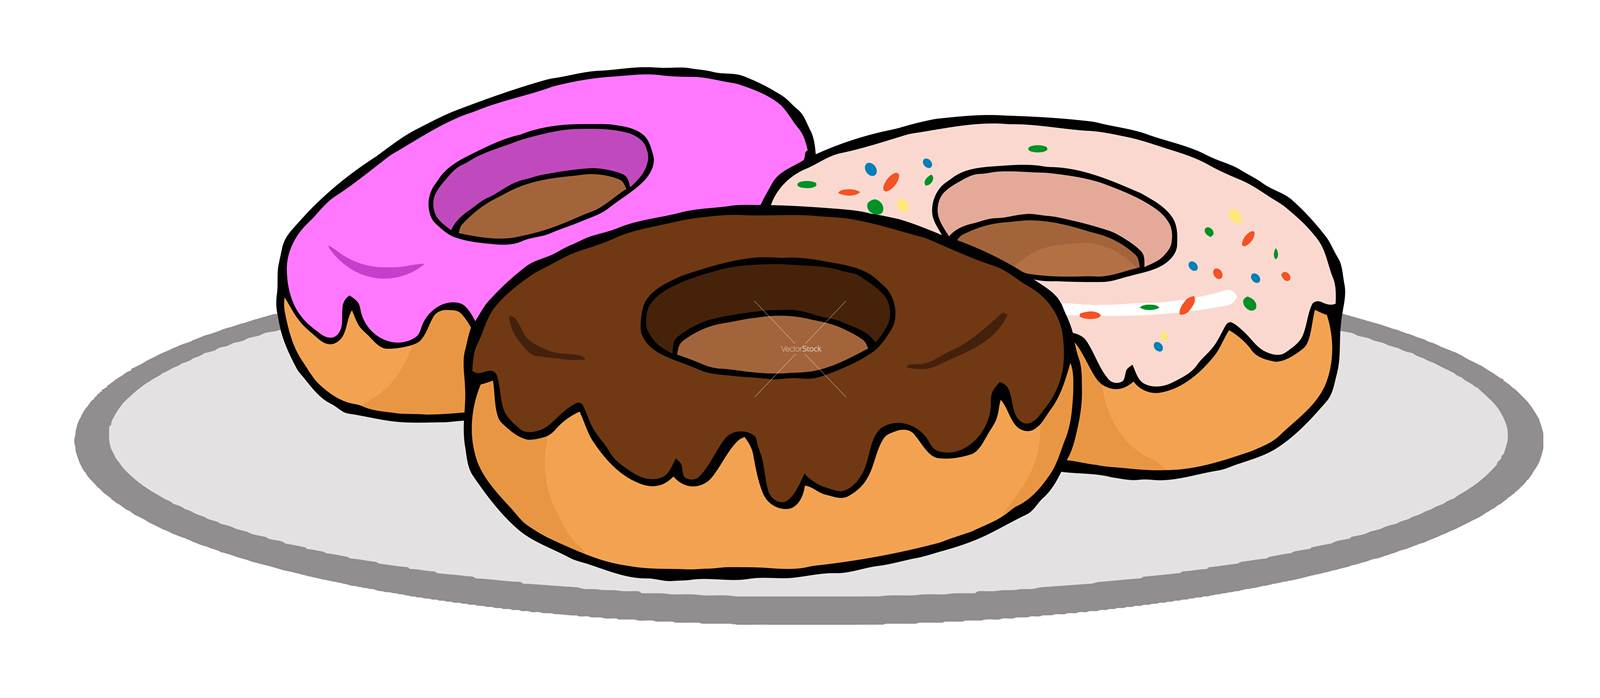 Cream filled donut clipart jpg freeuse library 12 Fun